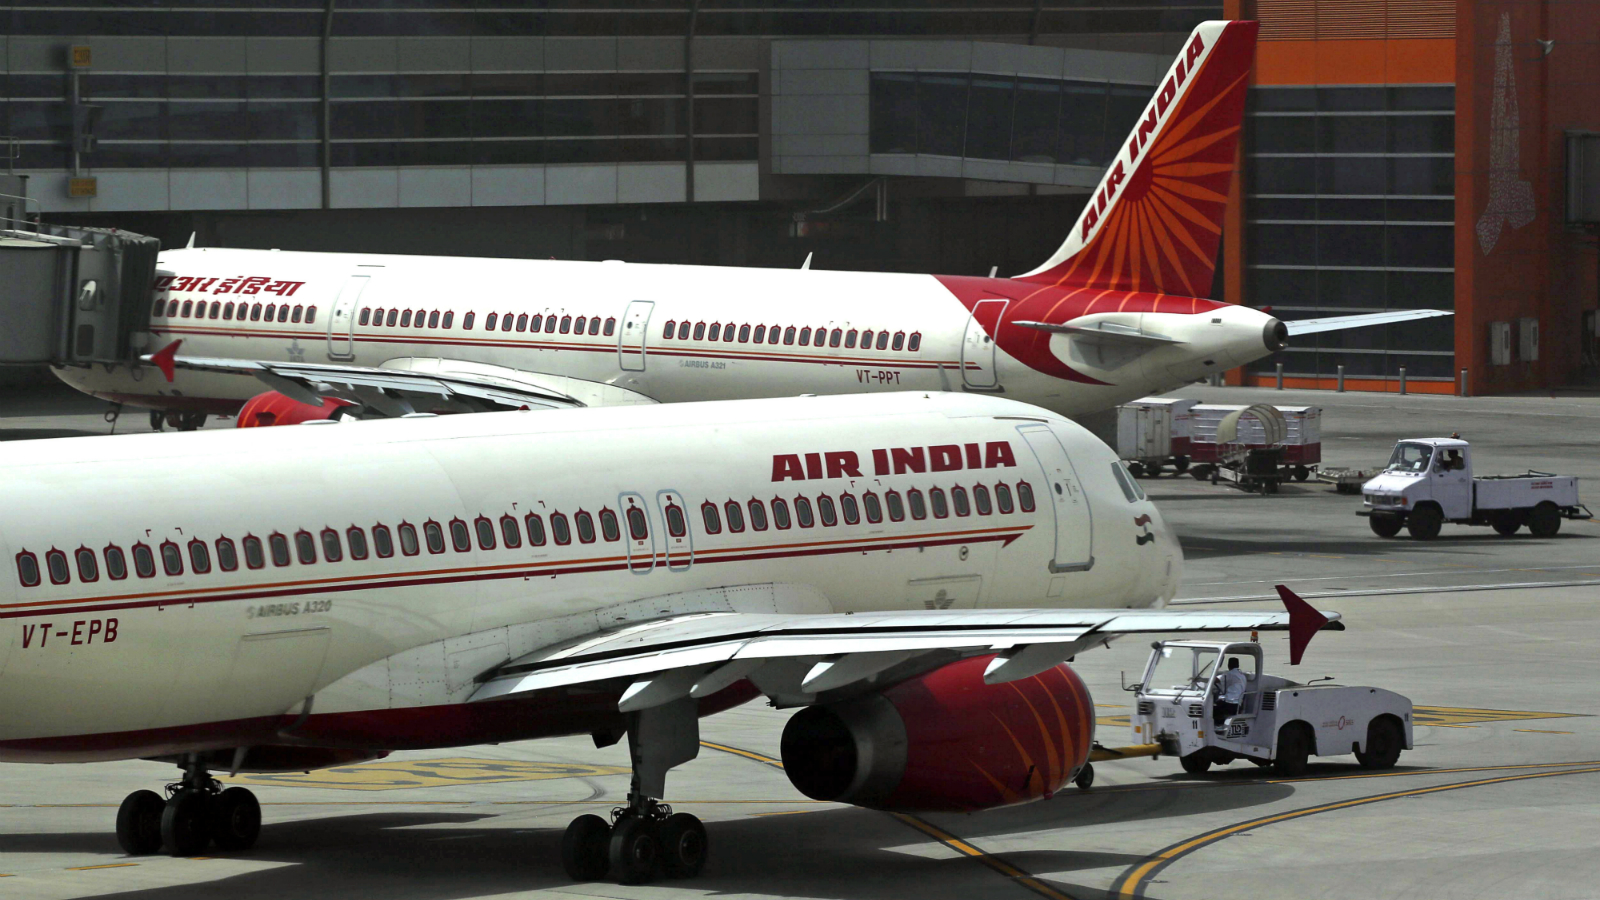 Still waiting to see if IndiGo bids for Air India